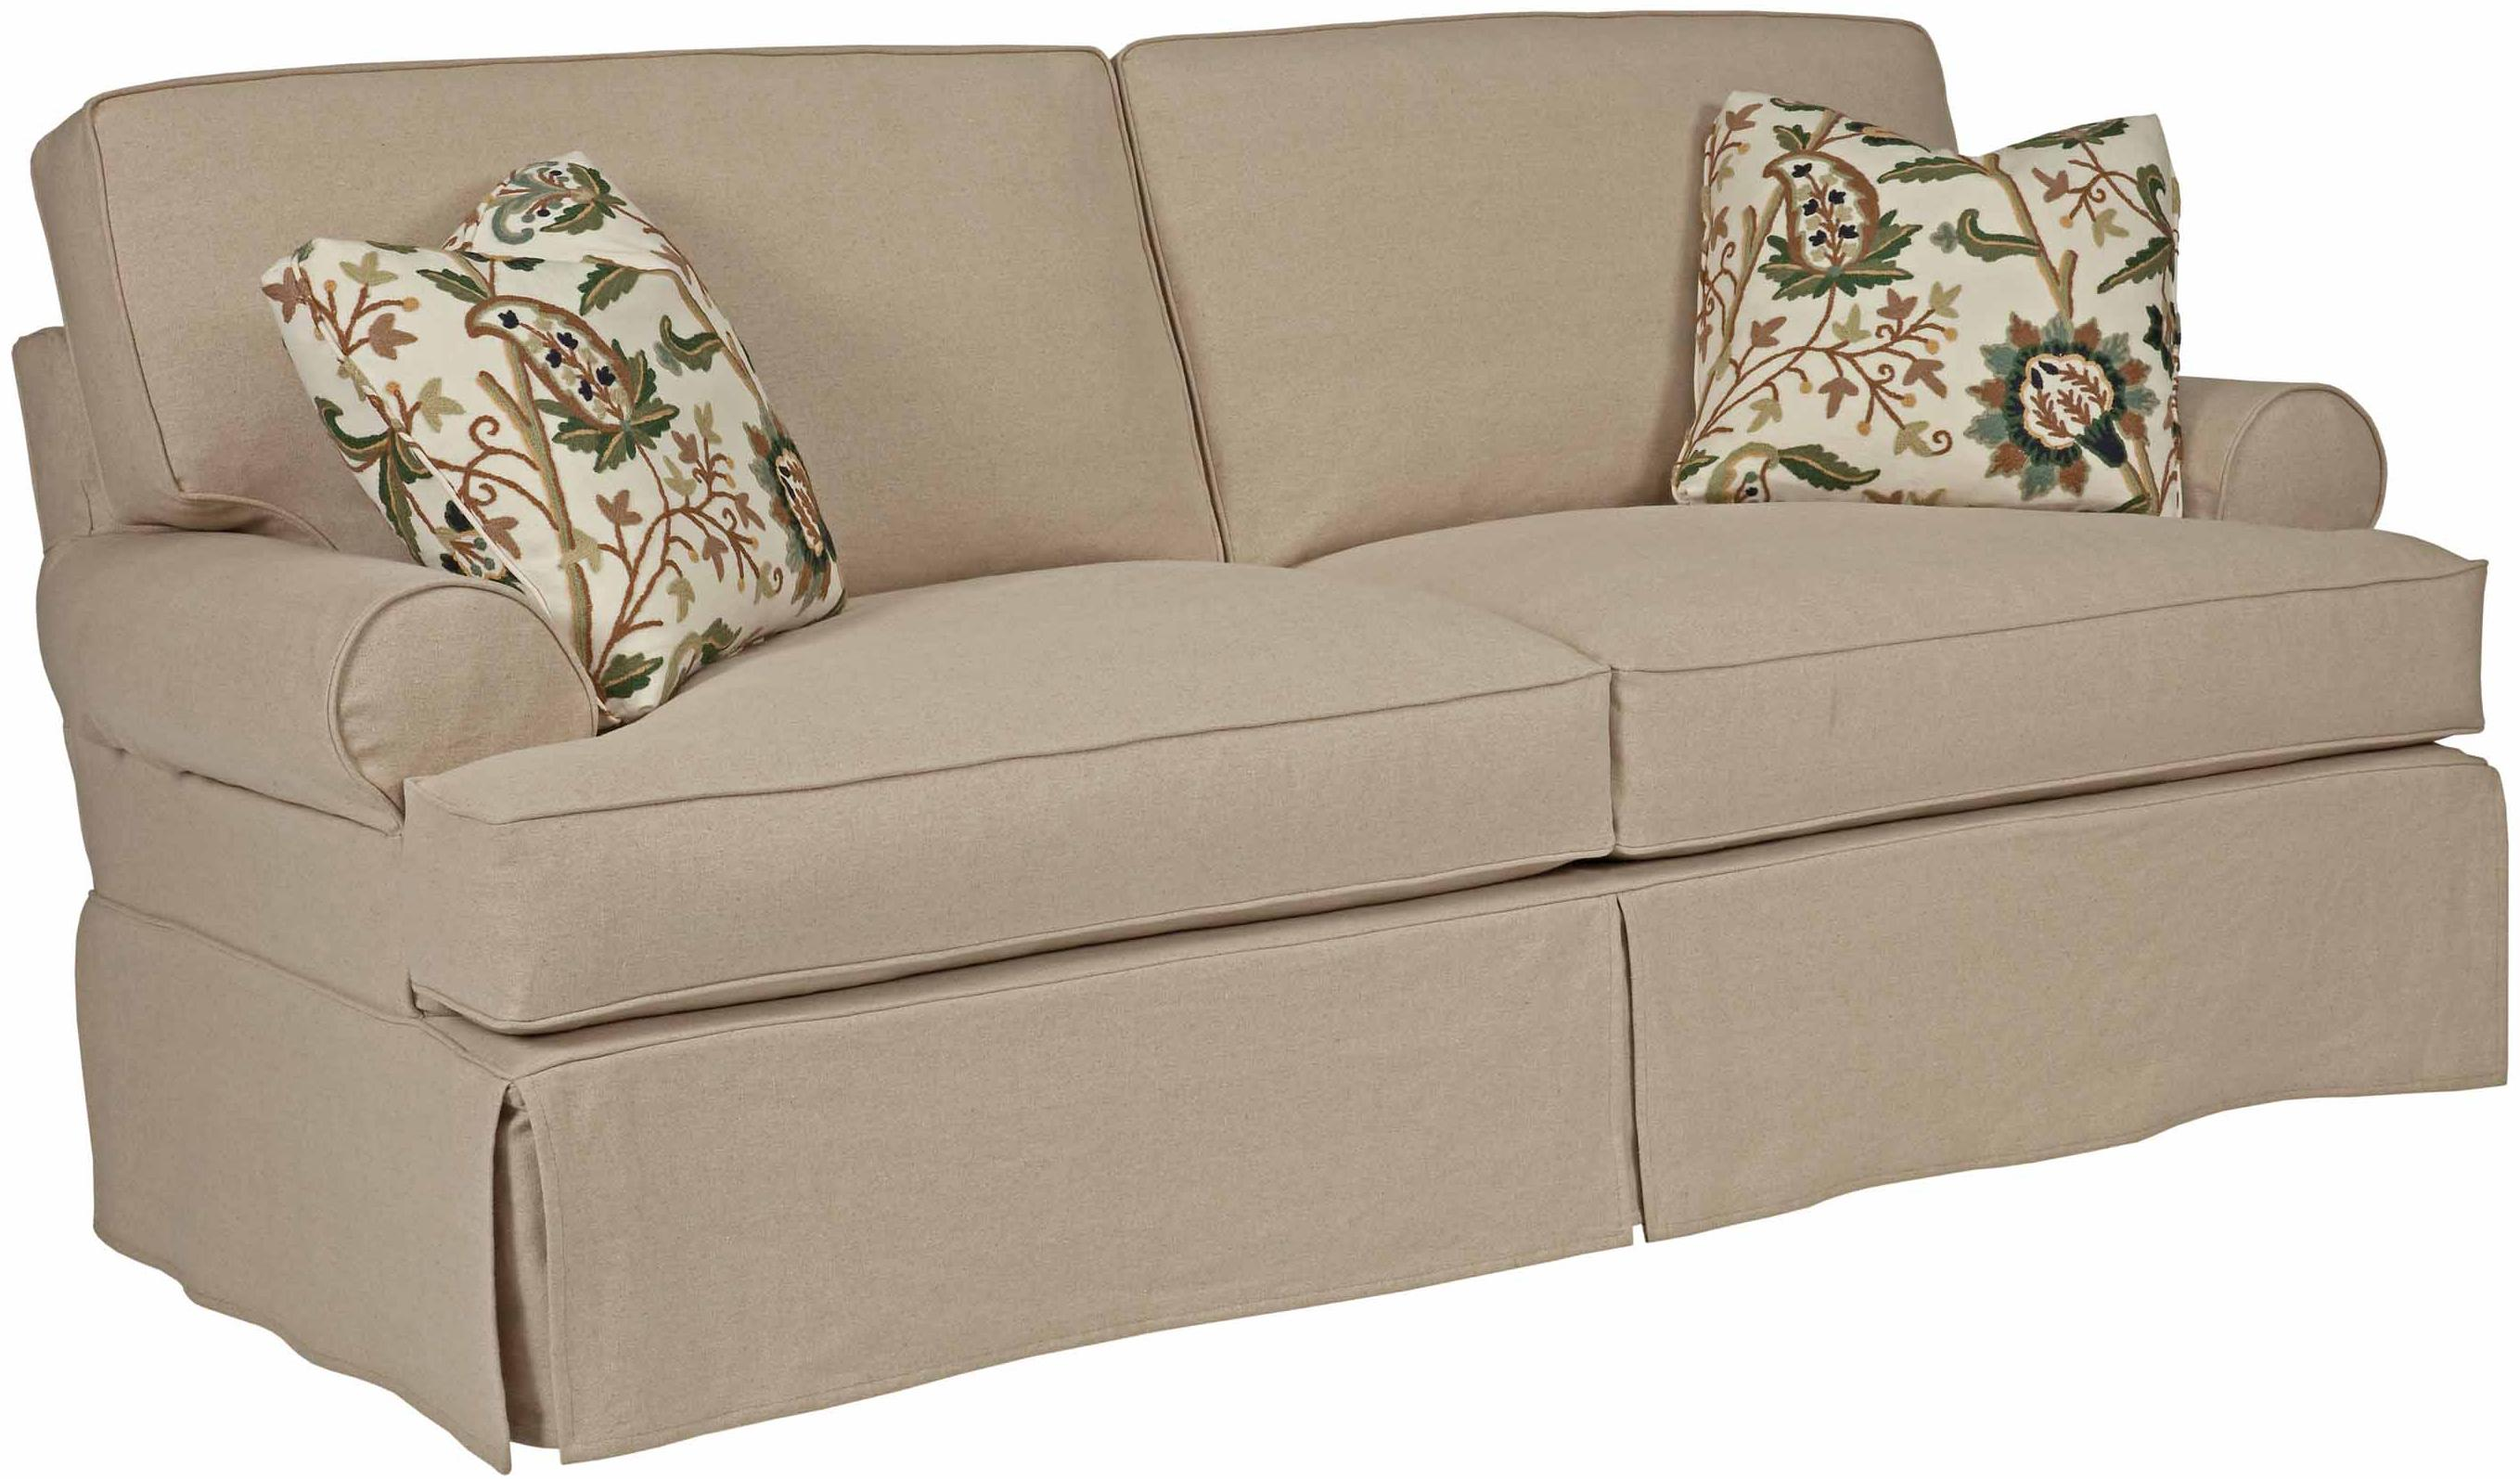 Samantha Two Seat Sofa With Slipcover Tailoring Loose Pillow Back By Kincaid Furniture Wolf